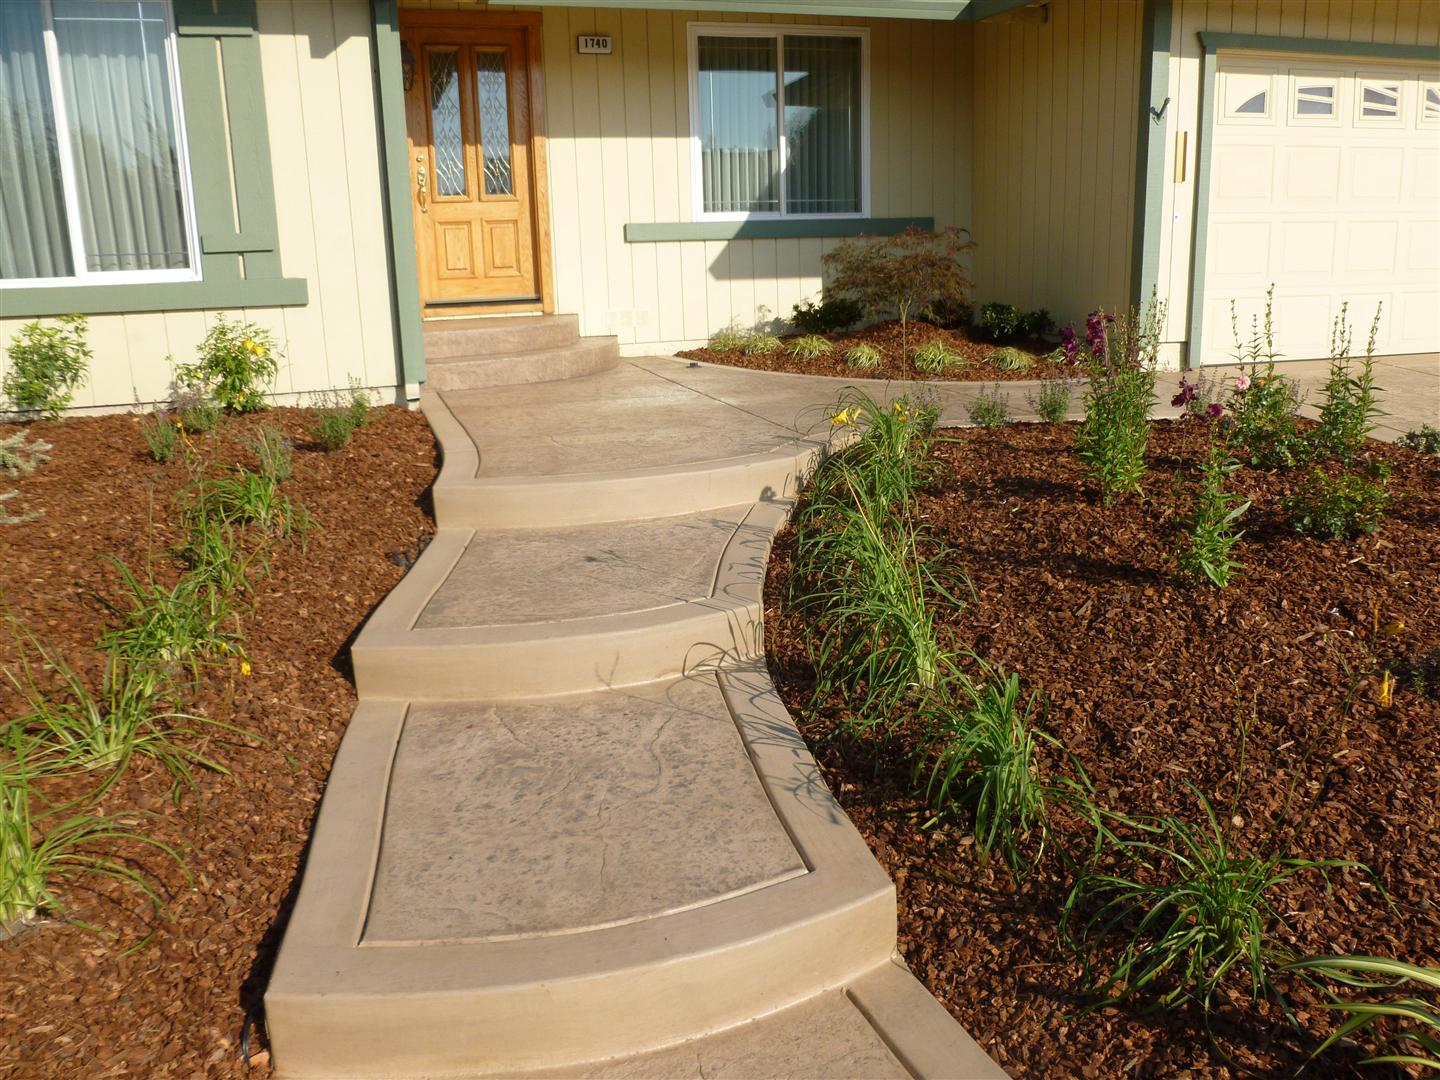 2012 | Turned Earth on Concrete Front Yard Ideas id=63413